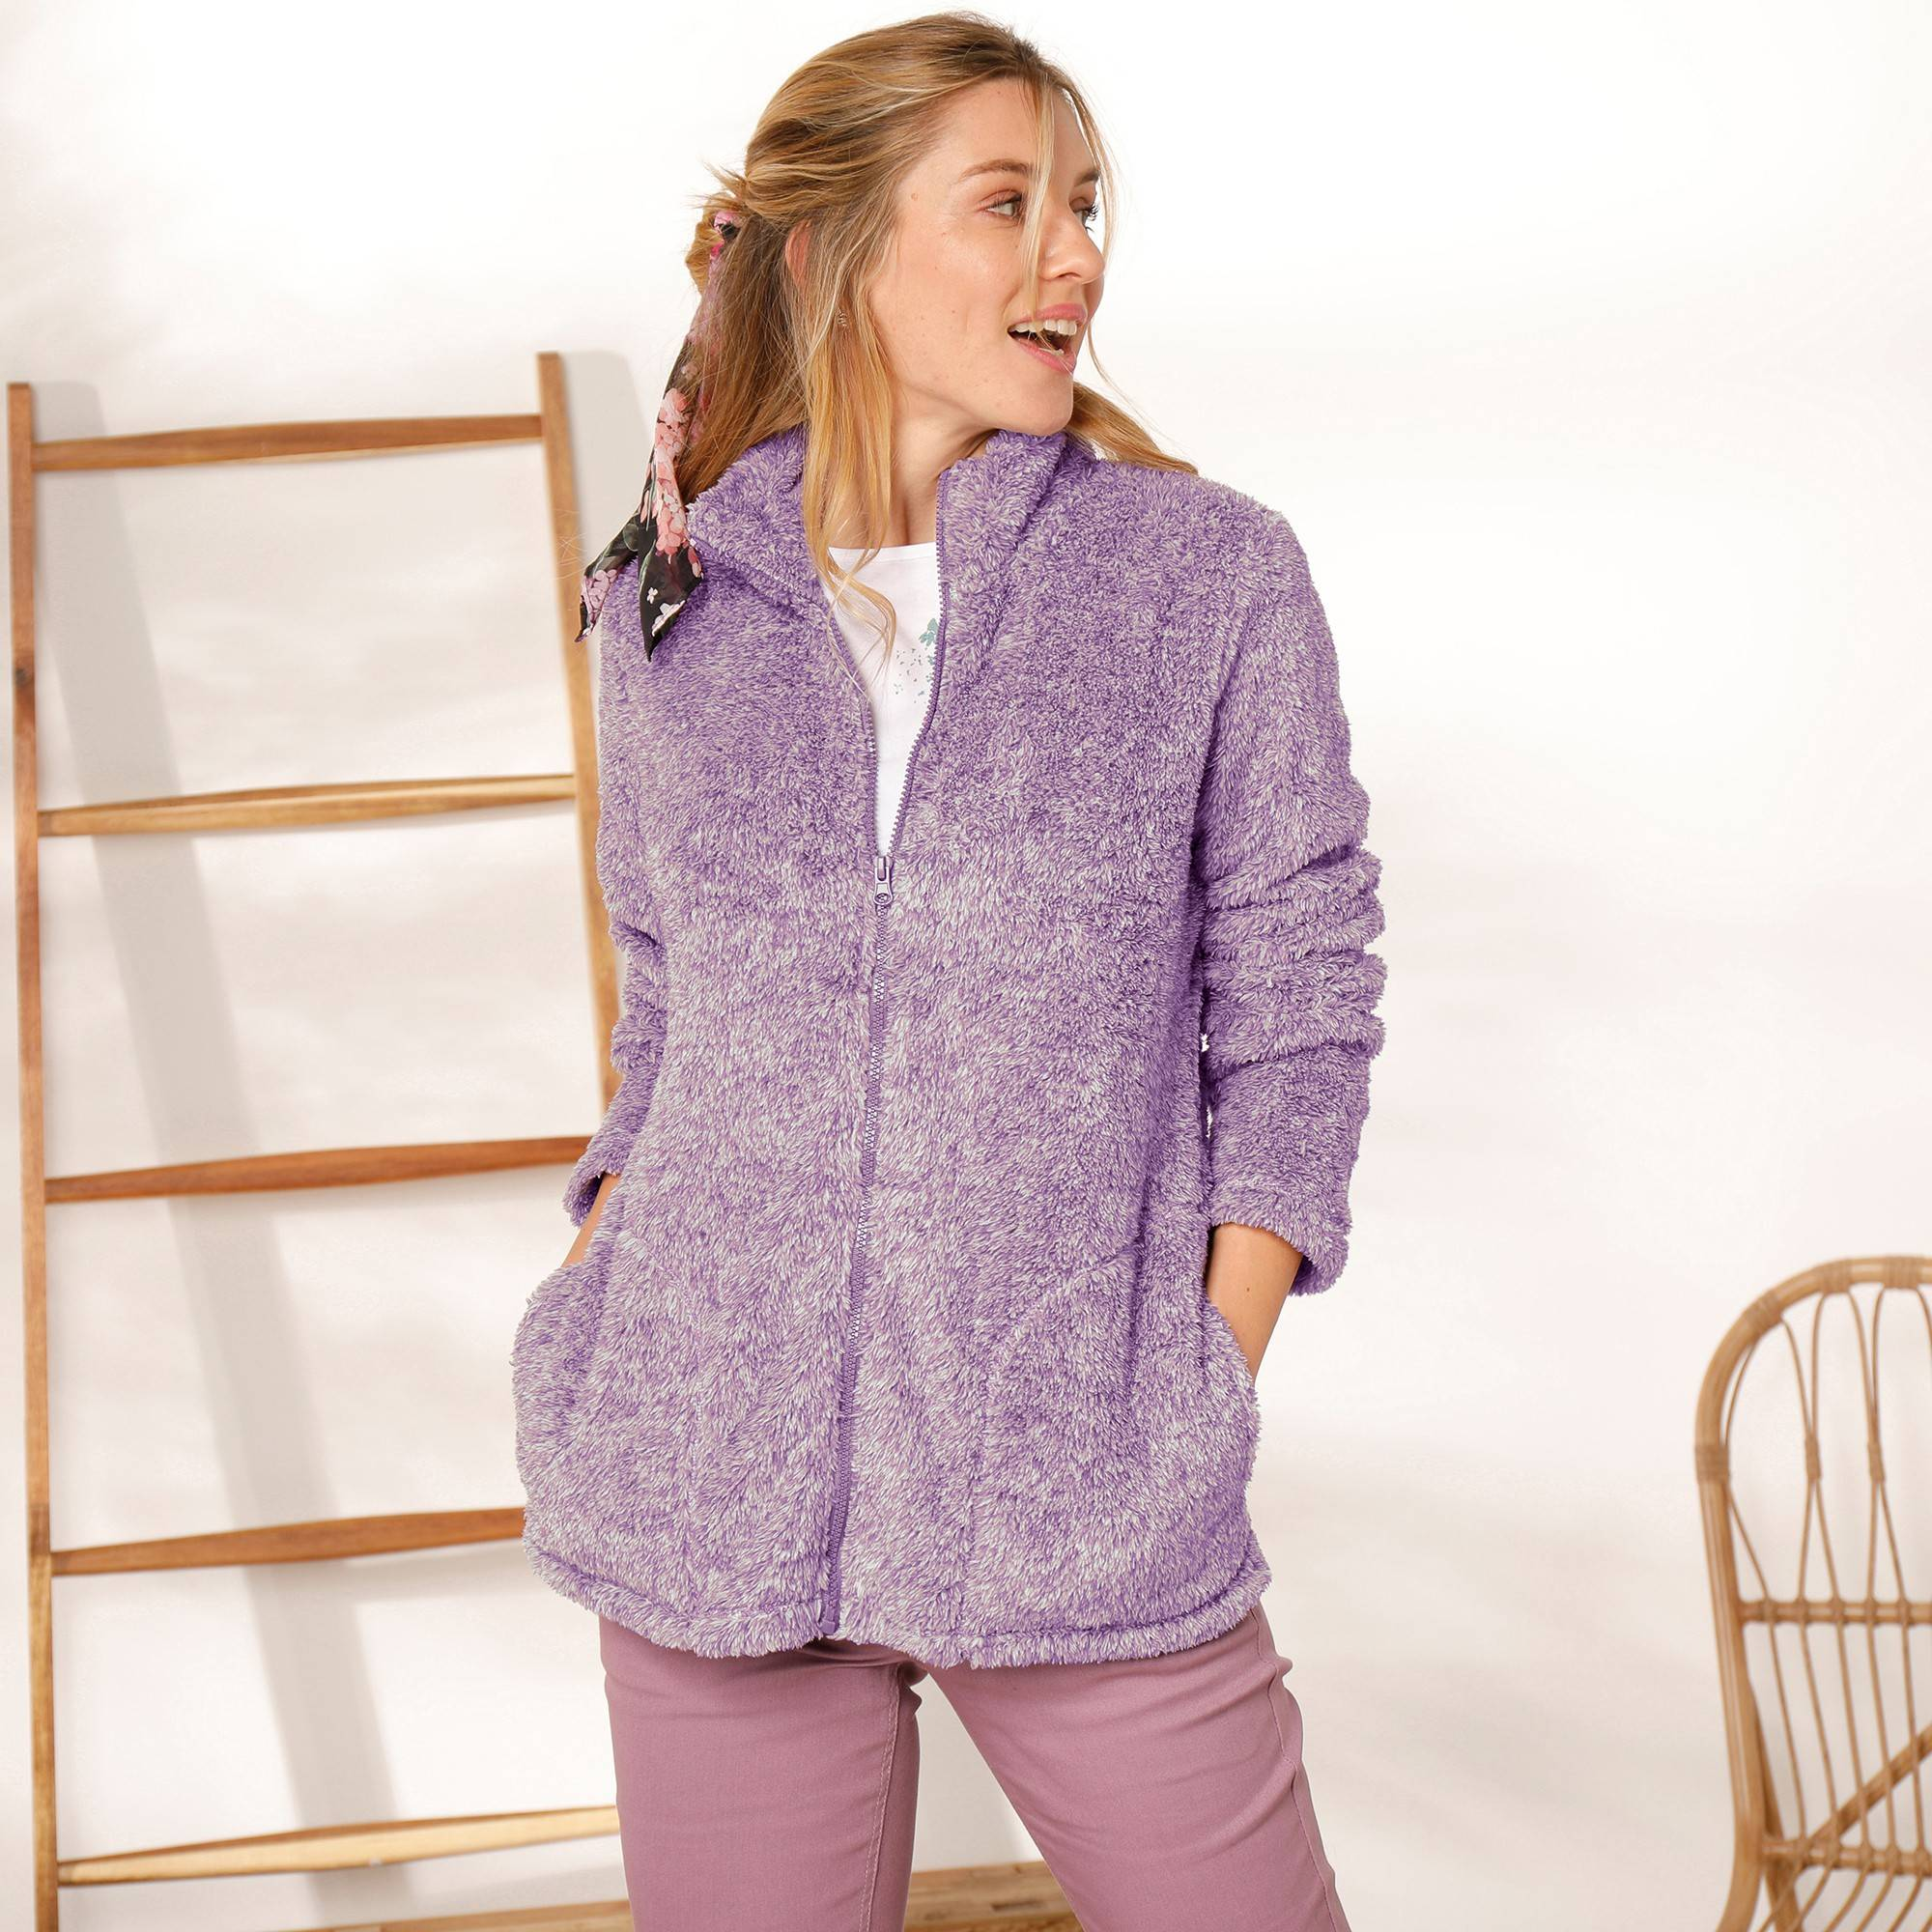 Casual Collection Veste maille peluche - Violet - Taille : 54 - Blancheporte